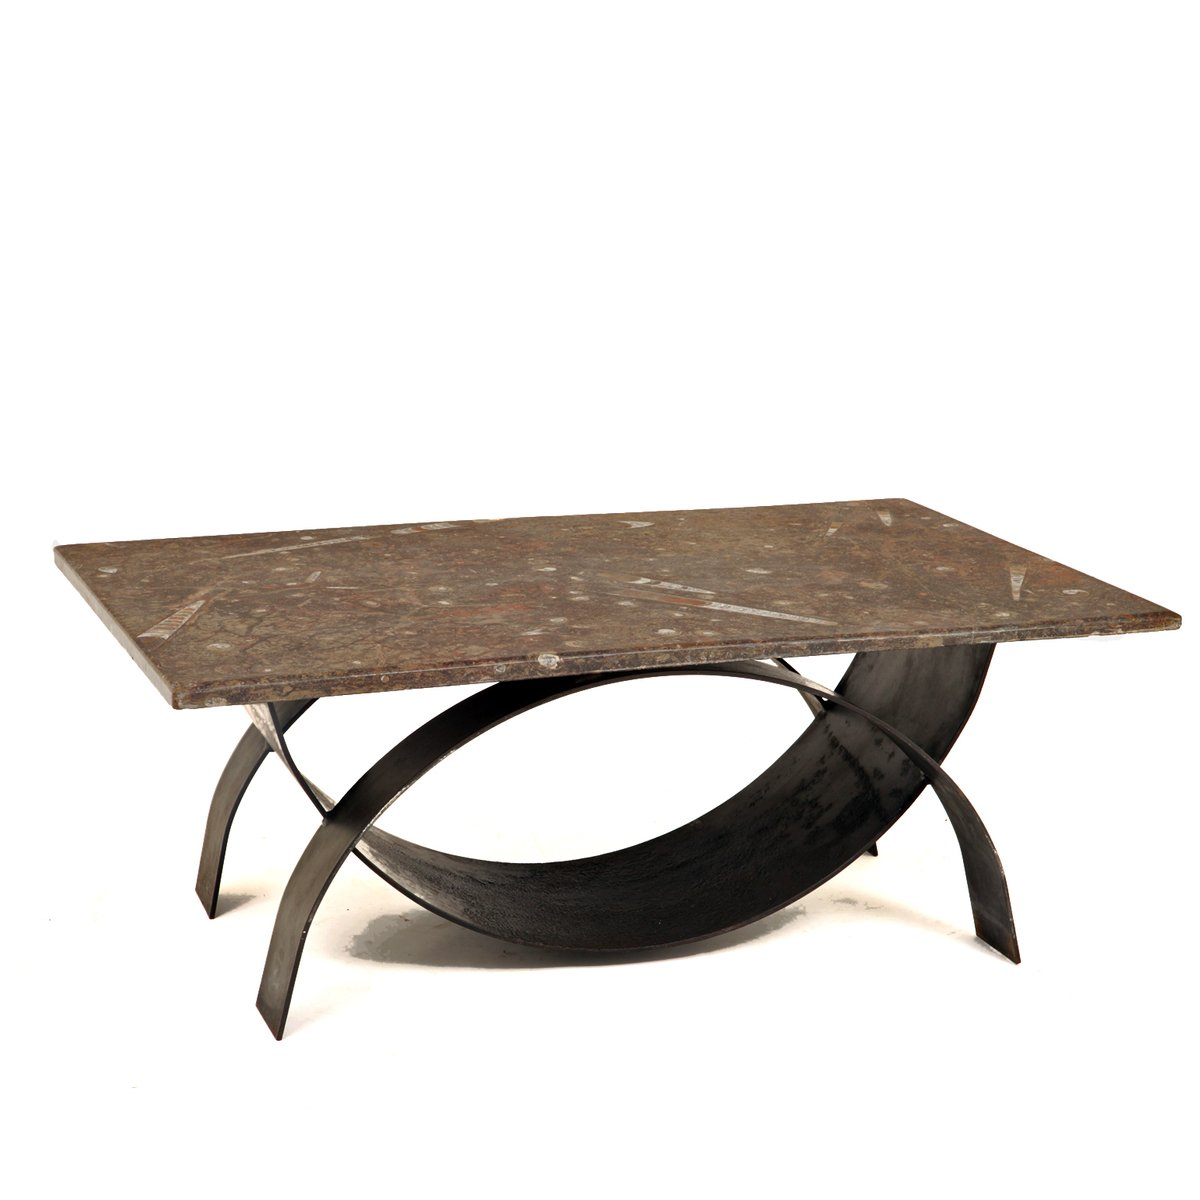 Modernist Coffee Table With Fossil Stone Top 1980s 7 3 893 00 Per Piece